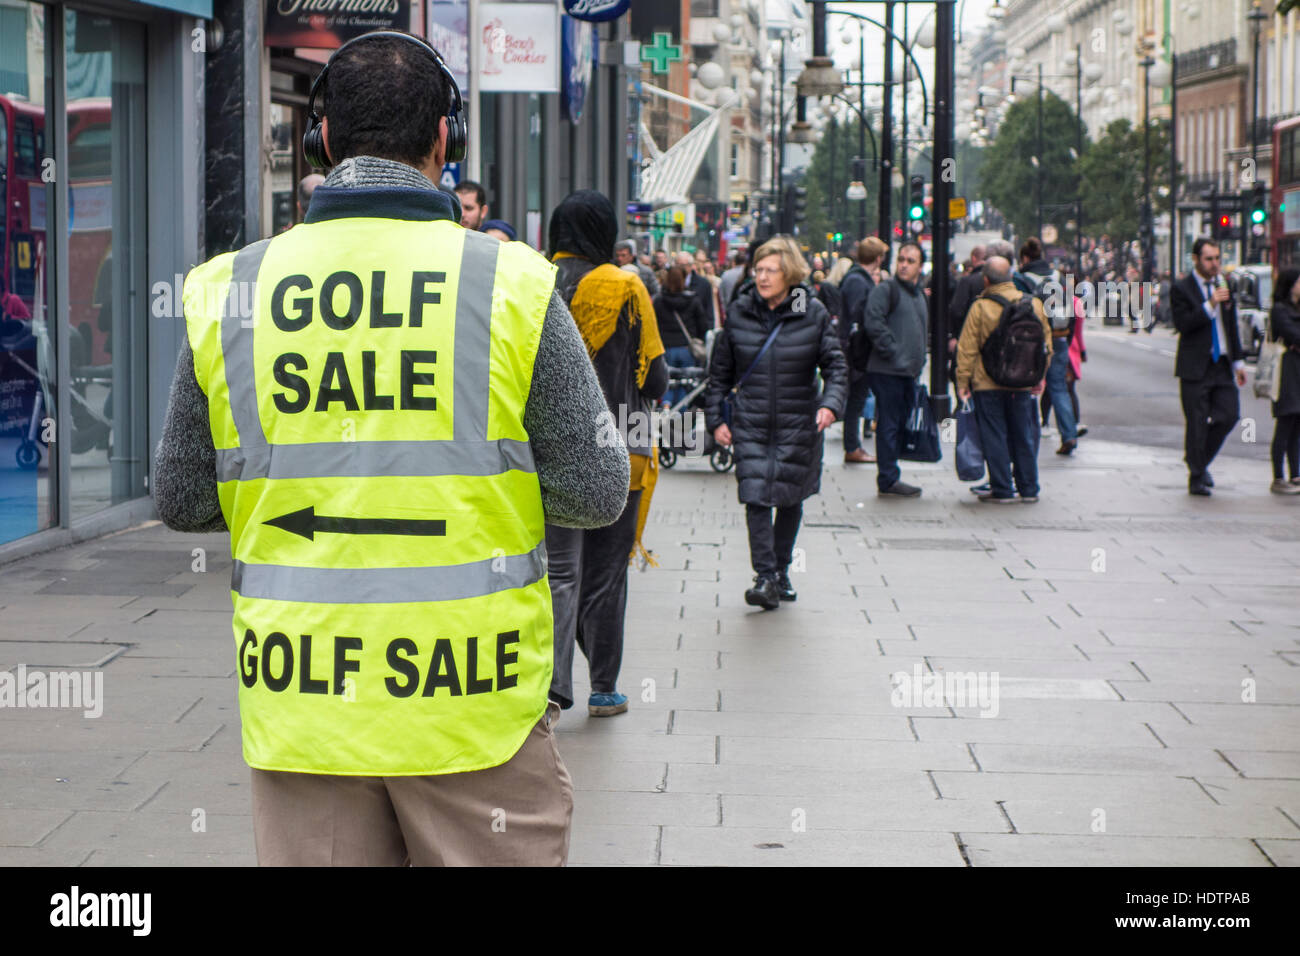 Shoppers passing man wearing high visibility jacket with Golf Sale advertising sign. Oxford Street, London - Stock Image